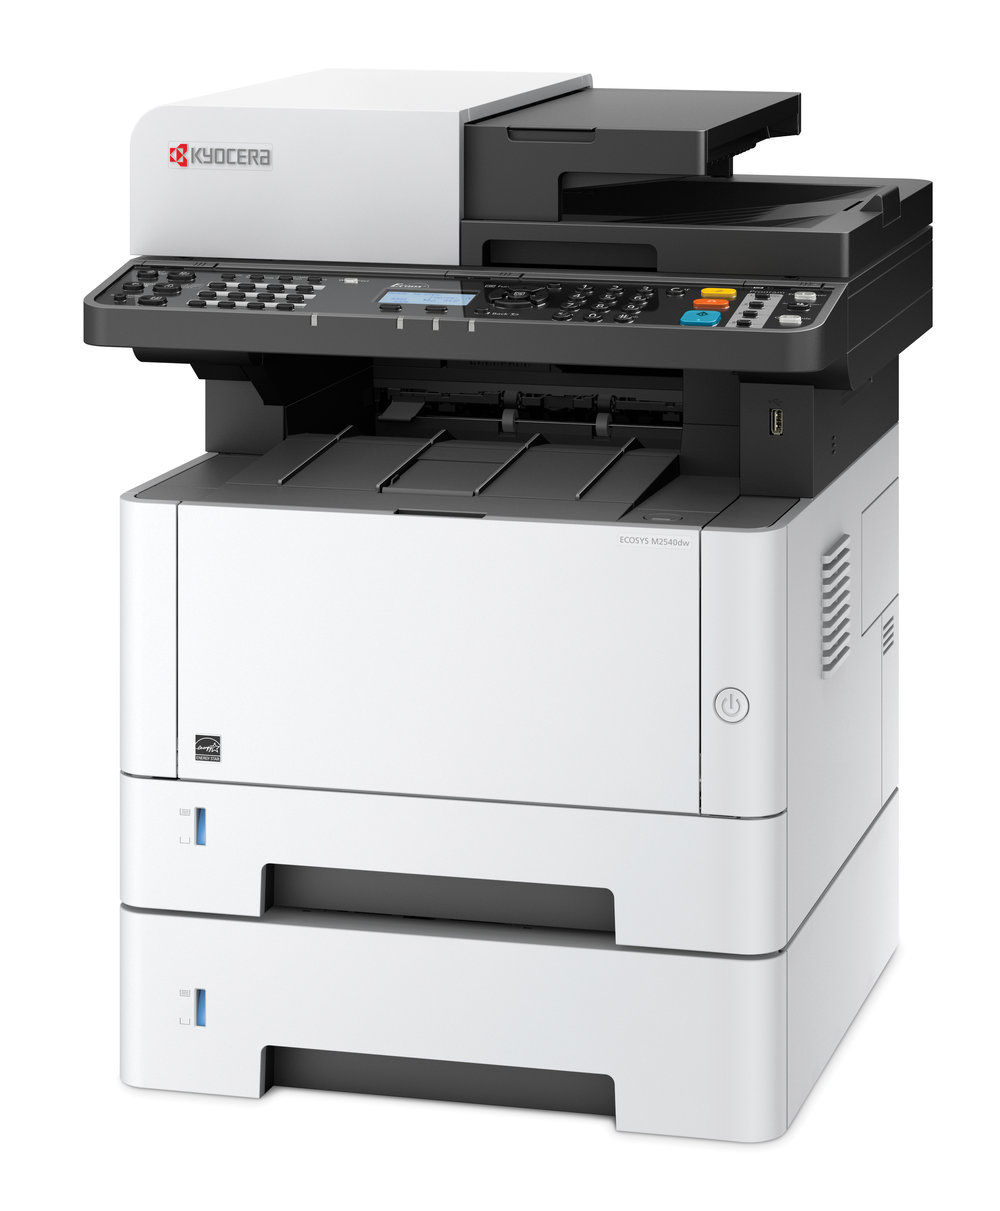 The Ecosys M2540dw